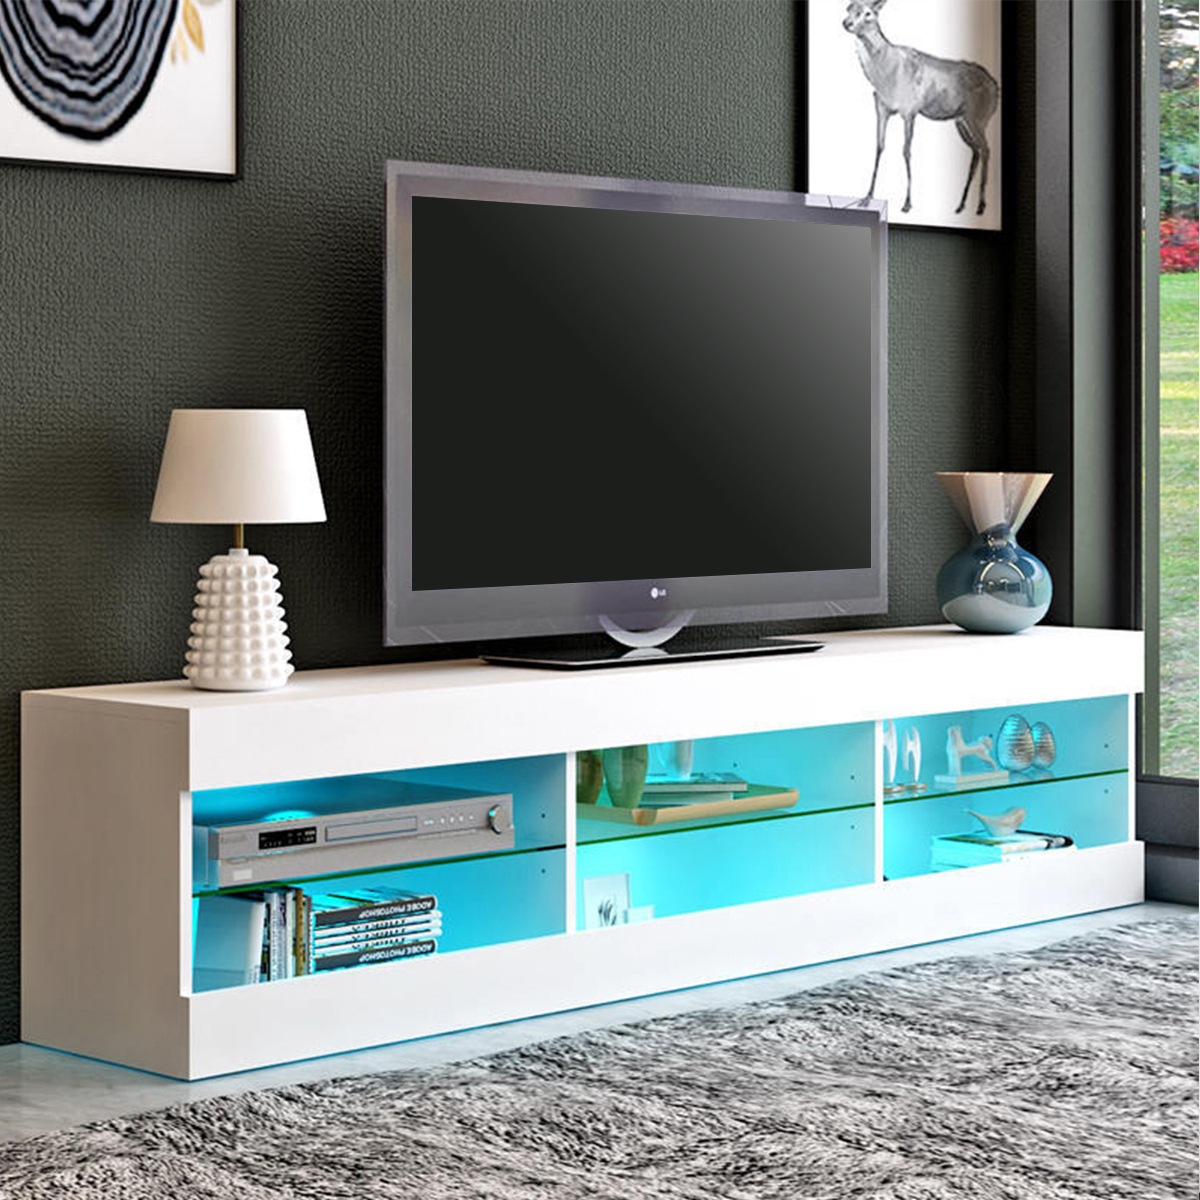 57'' Tv Stand With Rgb Led Lights, Modern Decorative Tv Regarding Glass Shelf With Tv Stands (View 3 of 20)